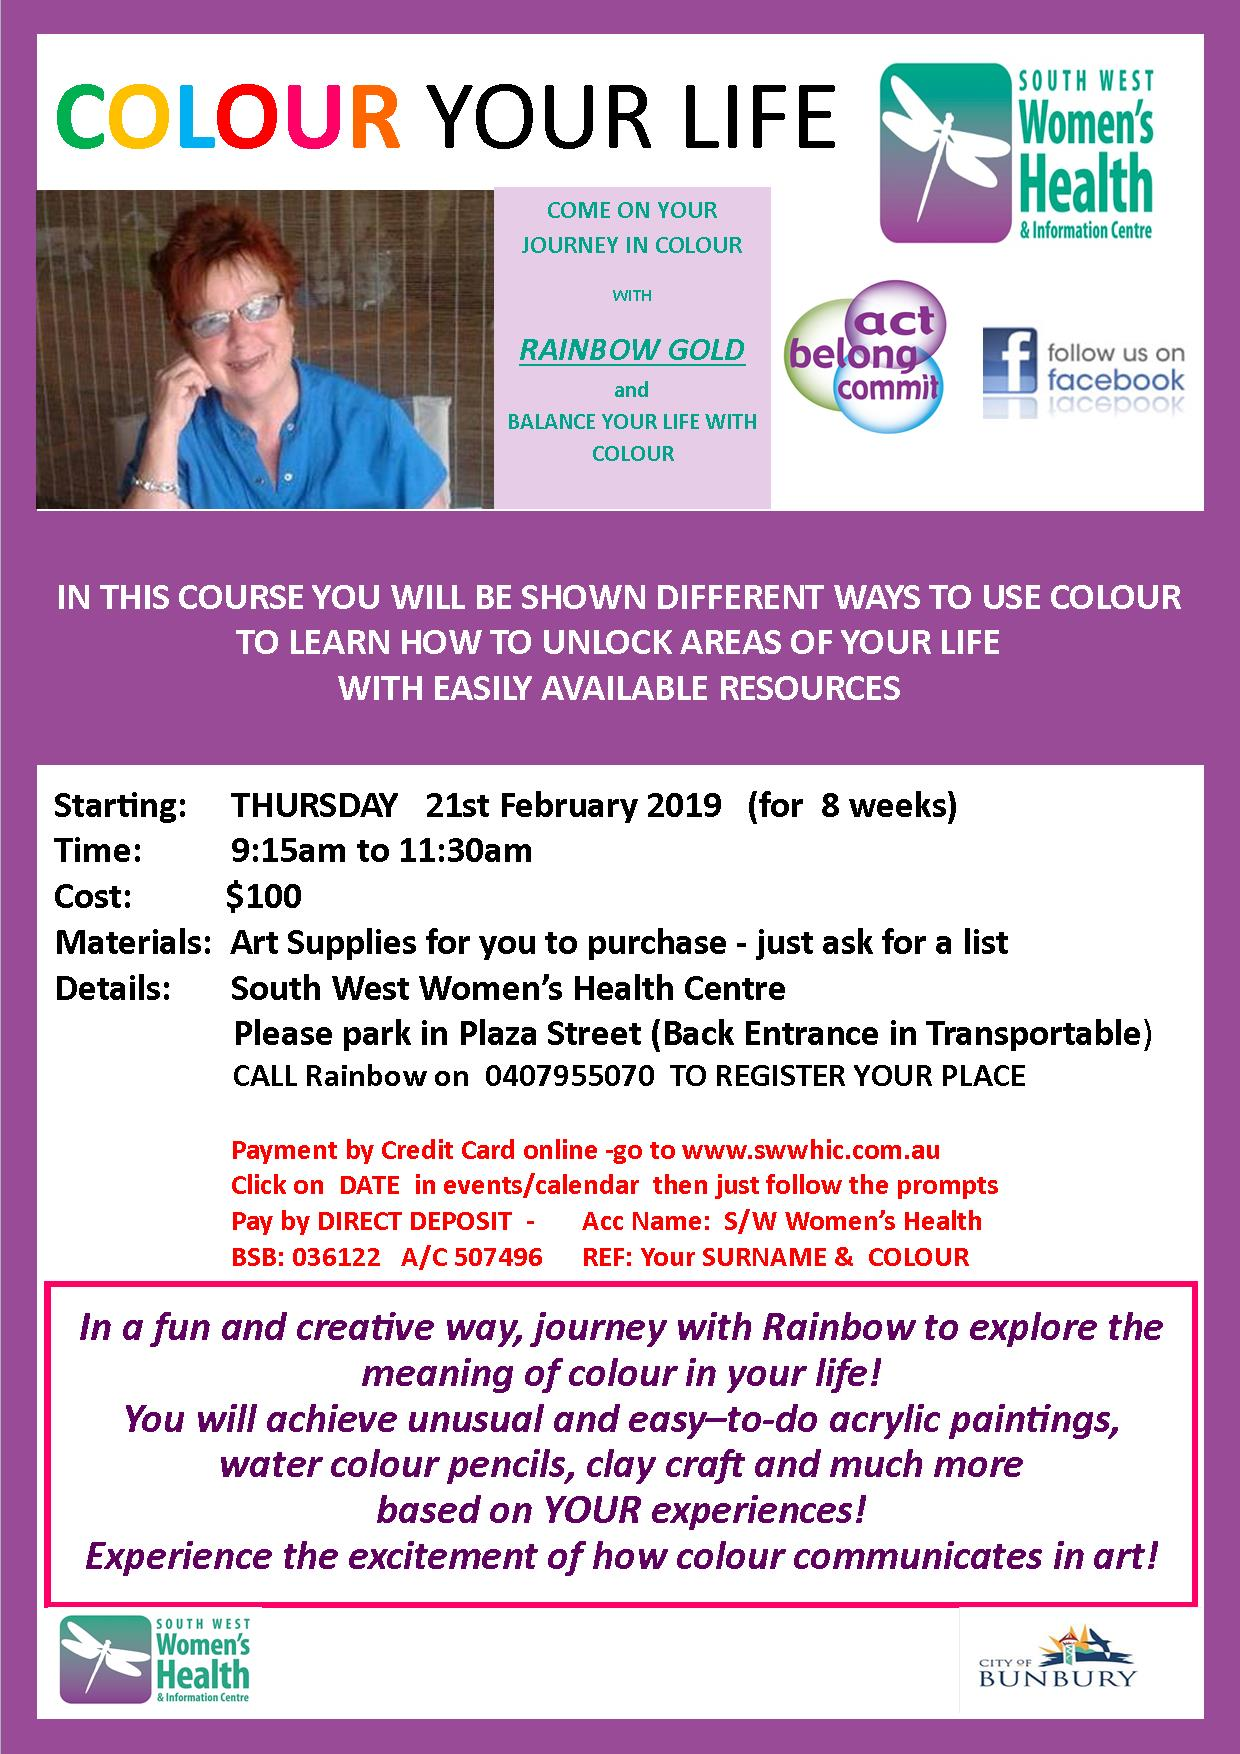 Colour Your Life Art Class Flyer